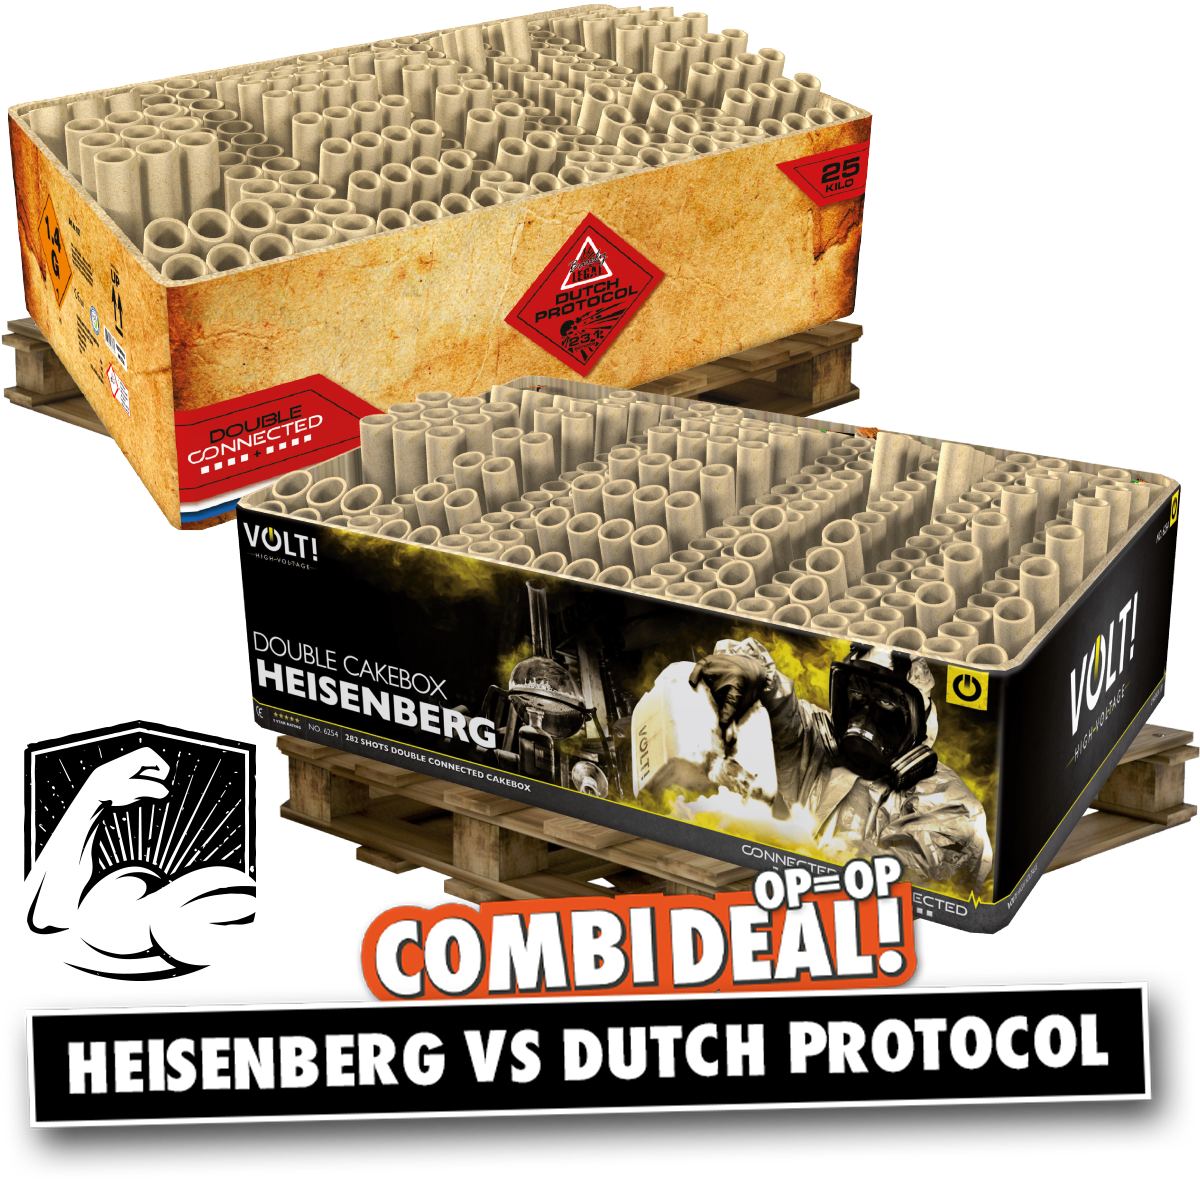 Combi deal Heisenberg vs dutch protocol